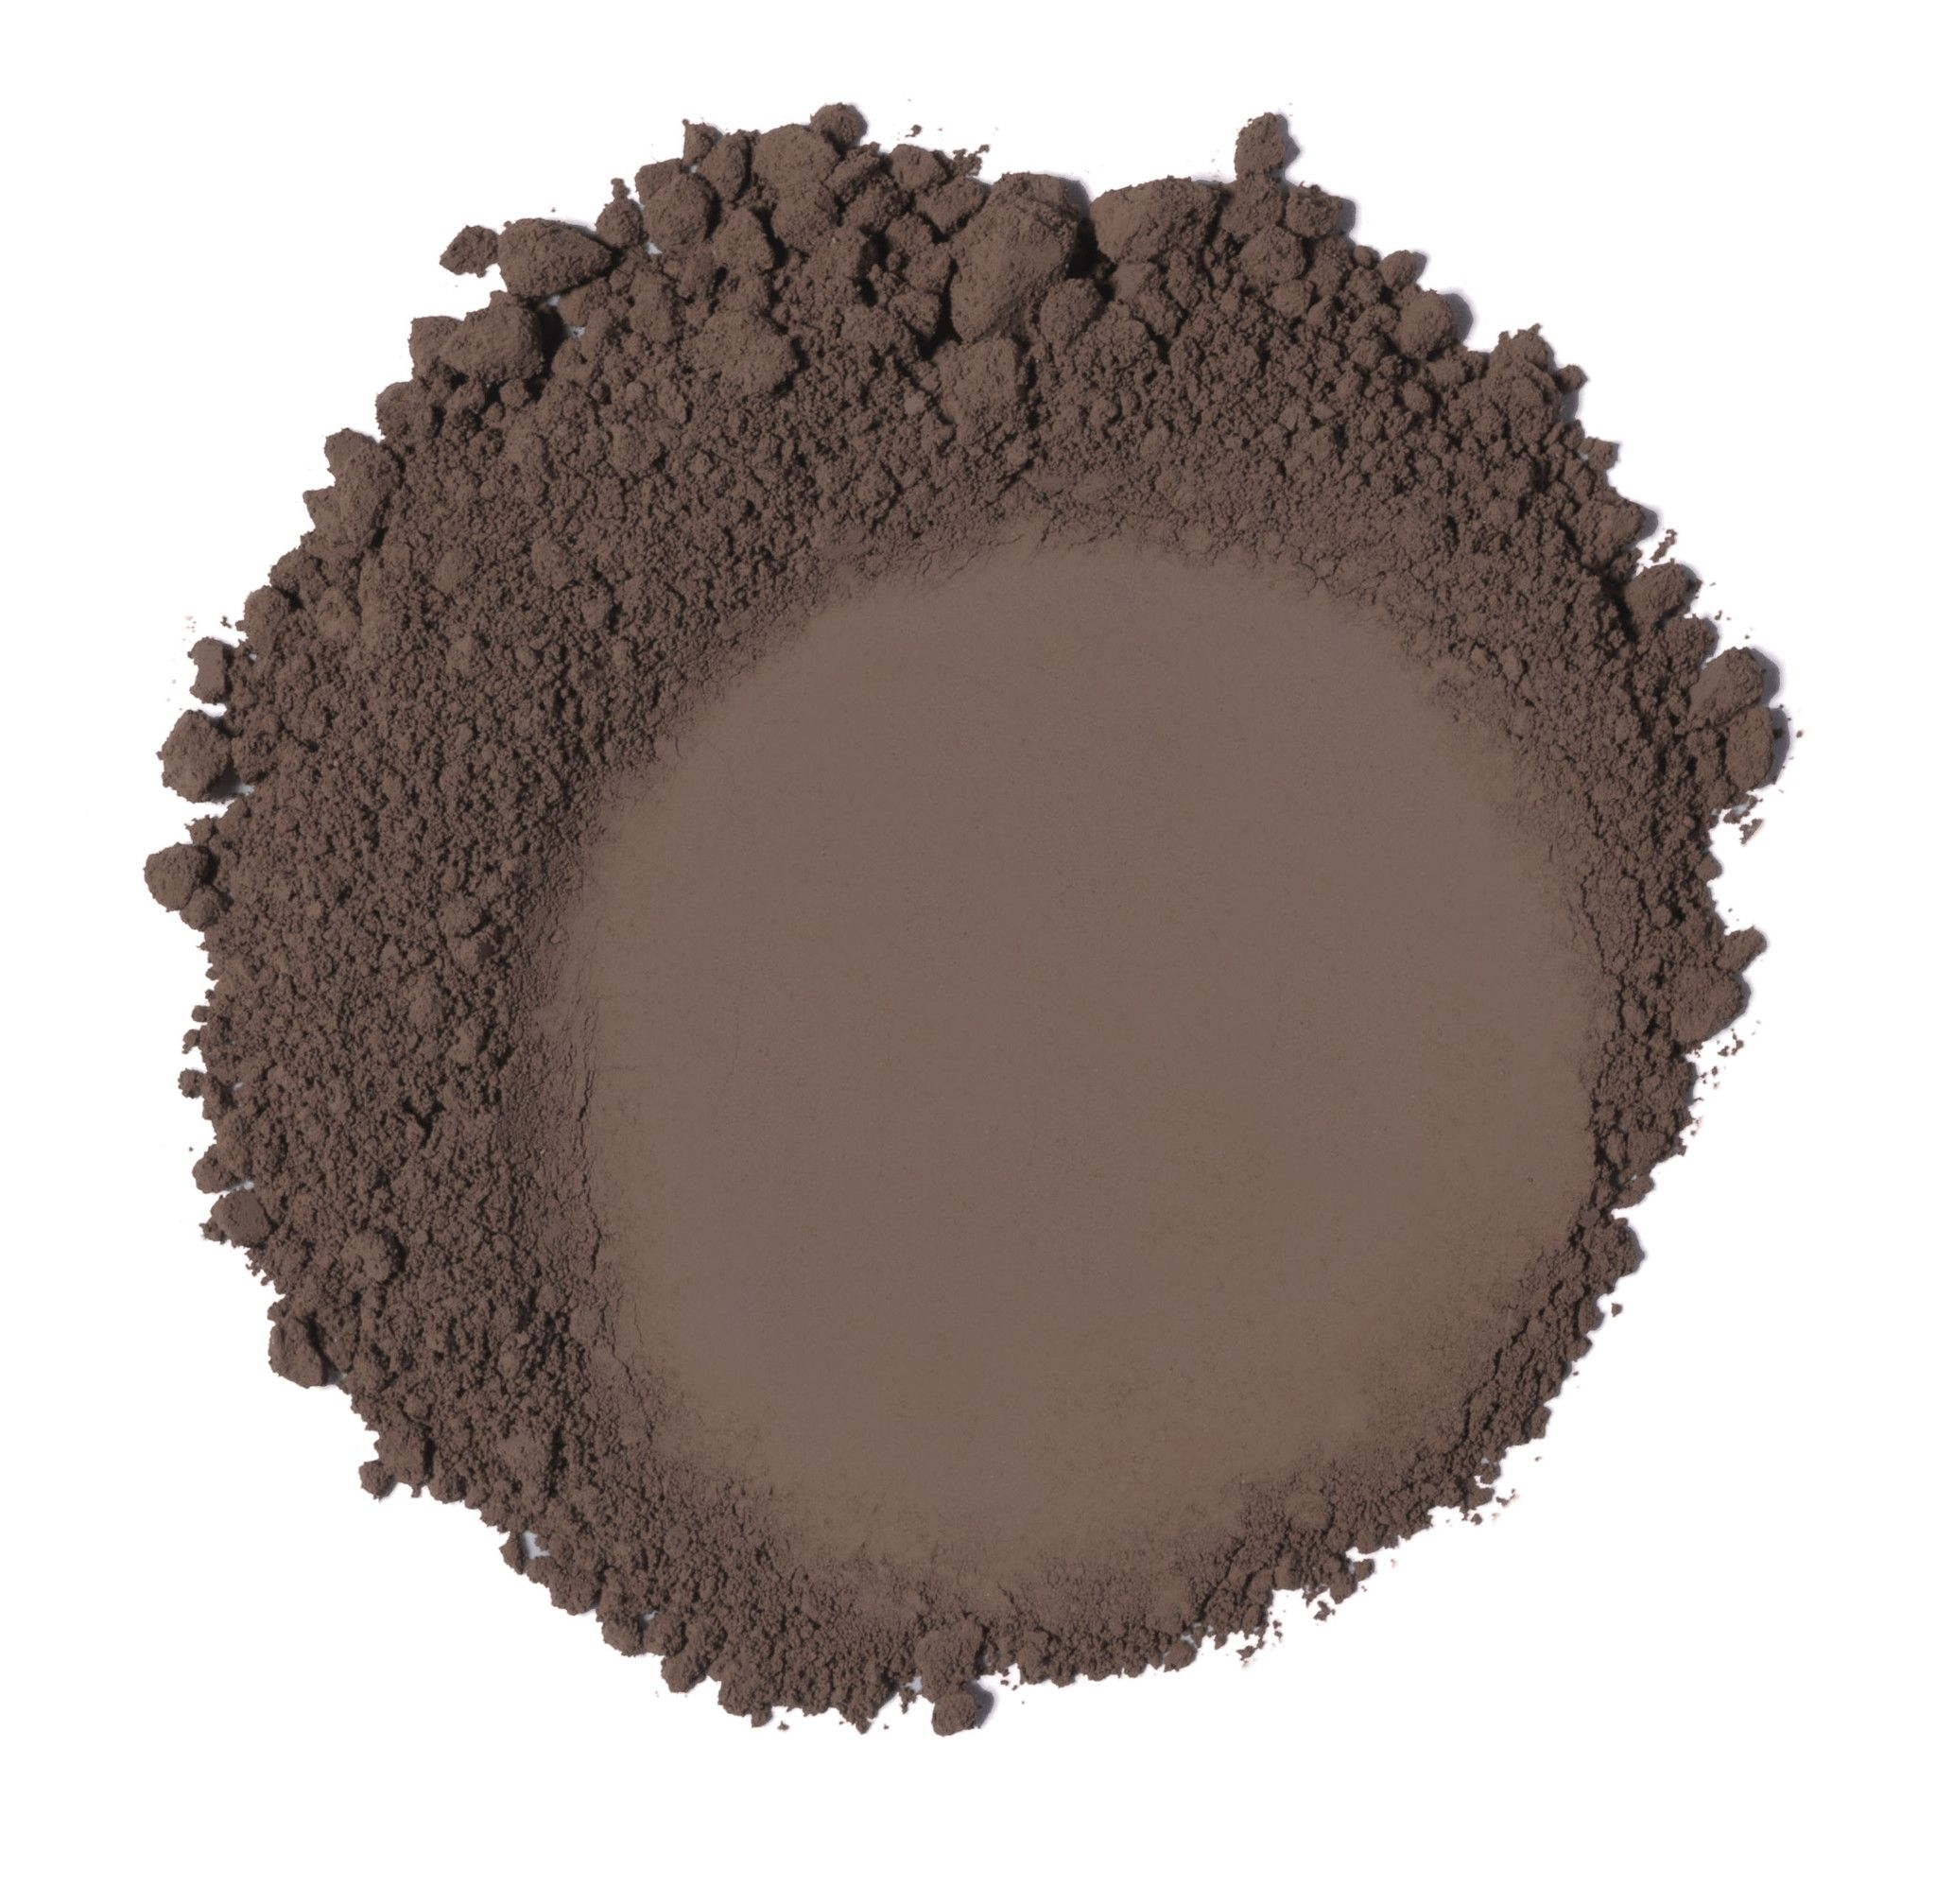 Matte Loose Powder Eyeshadows No Mica, No Titanium